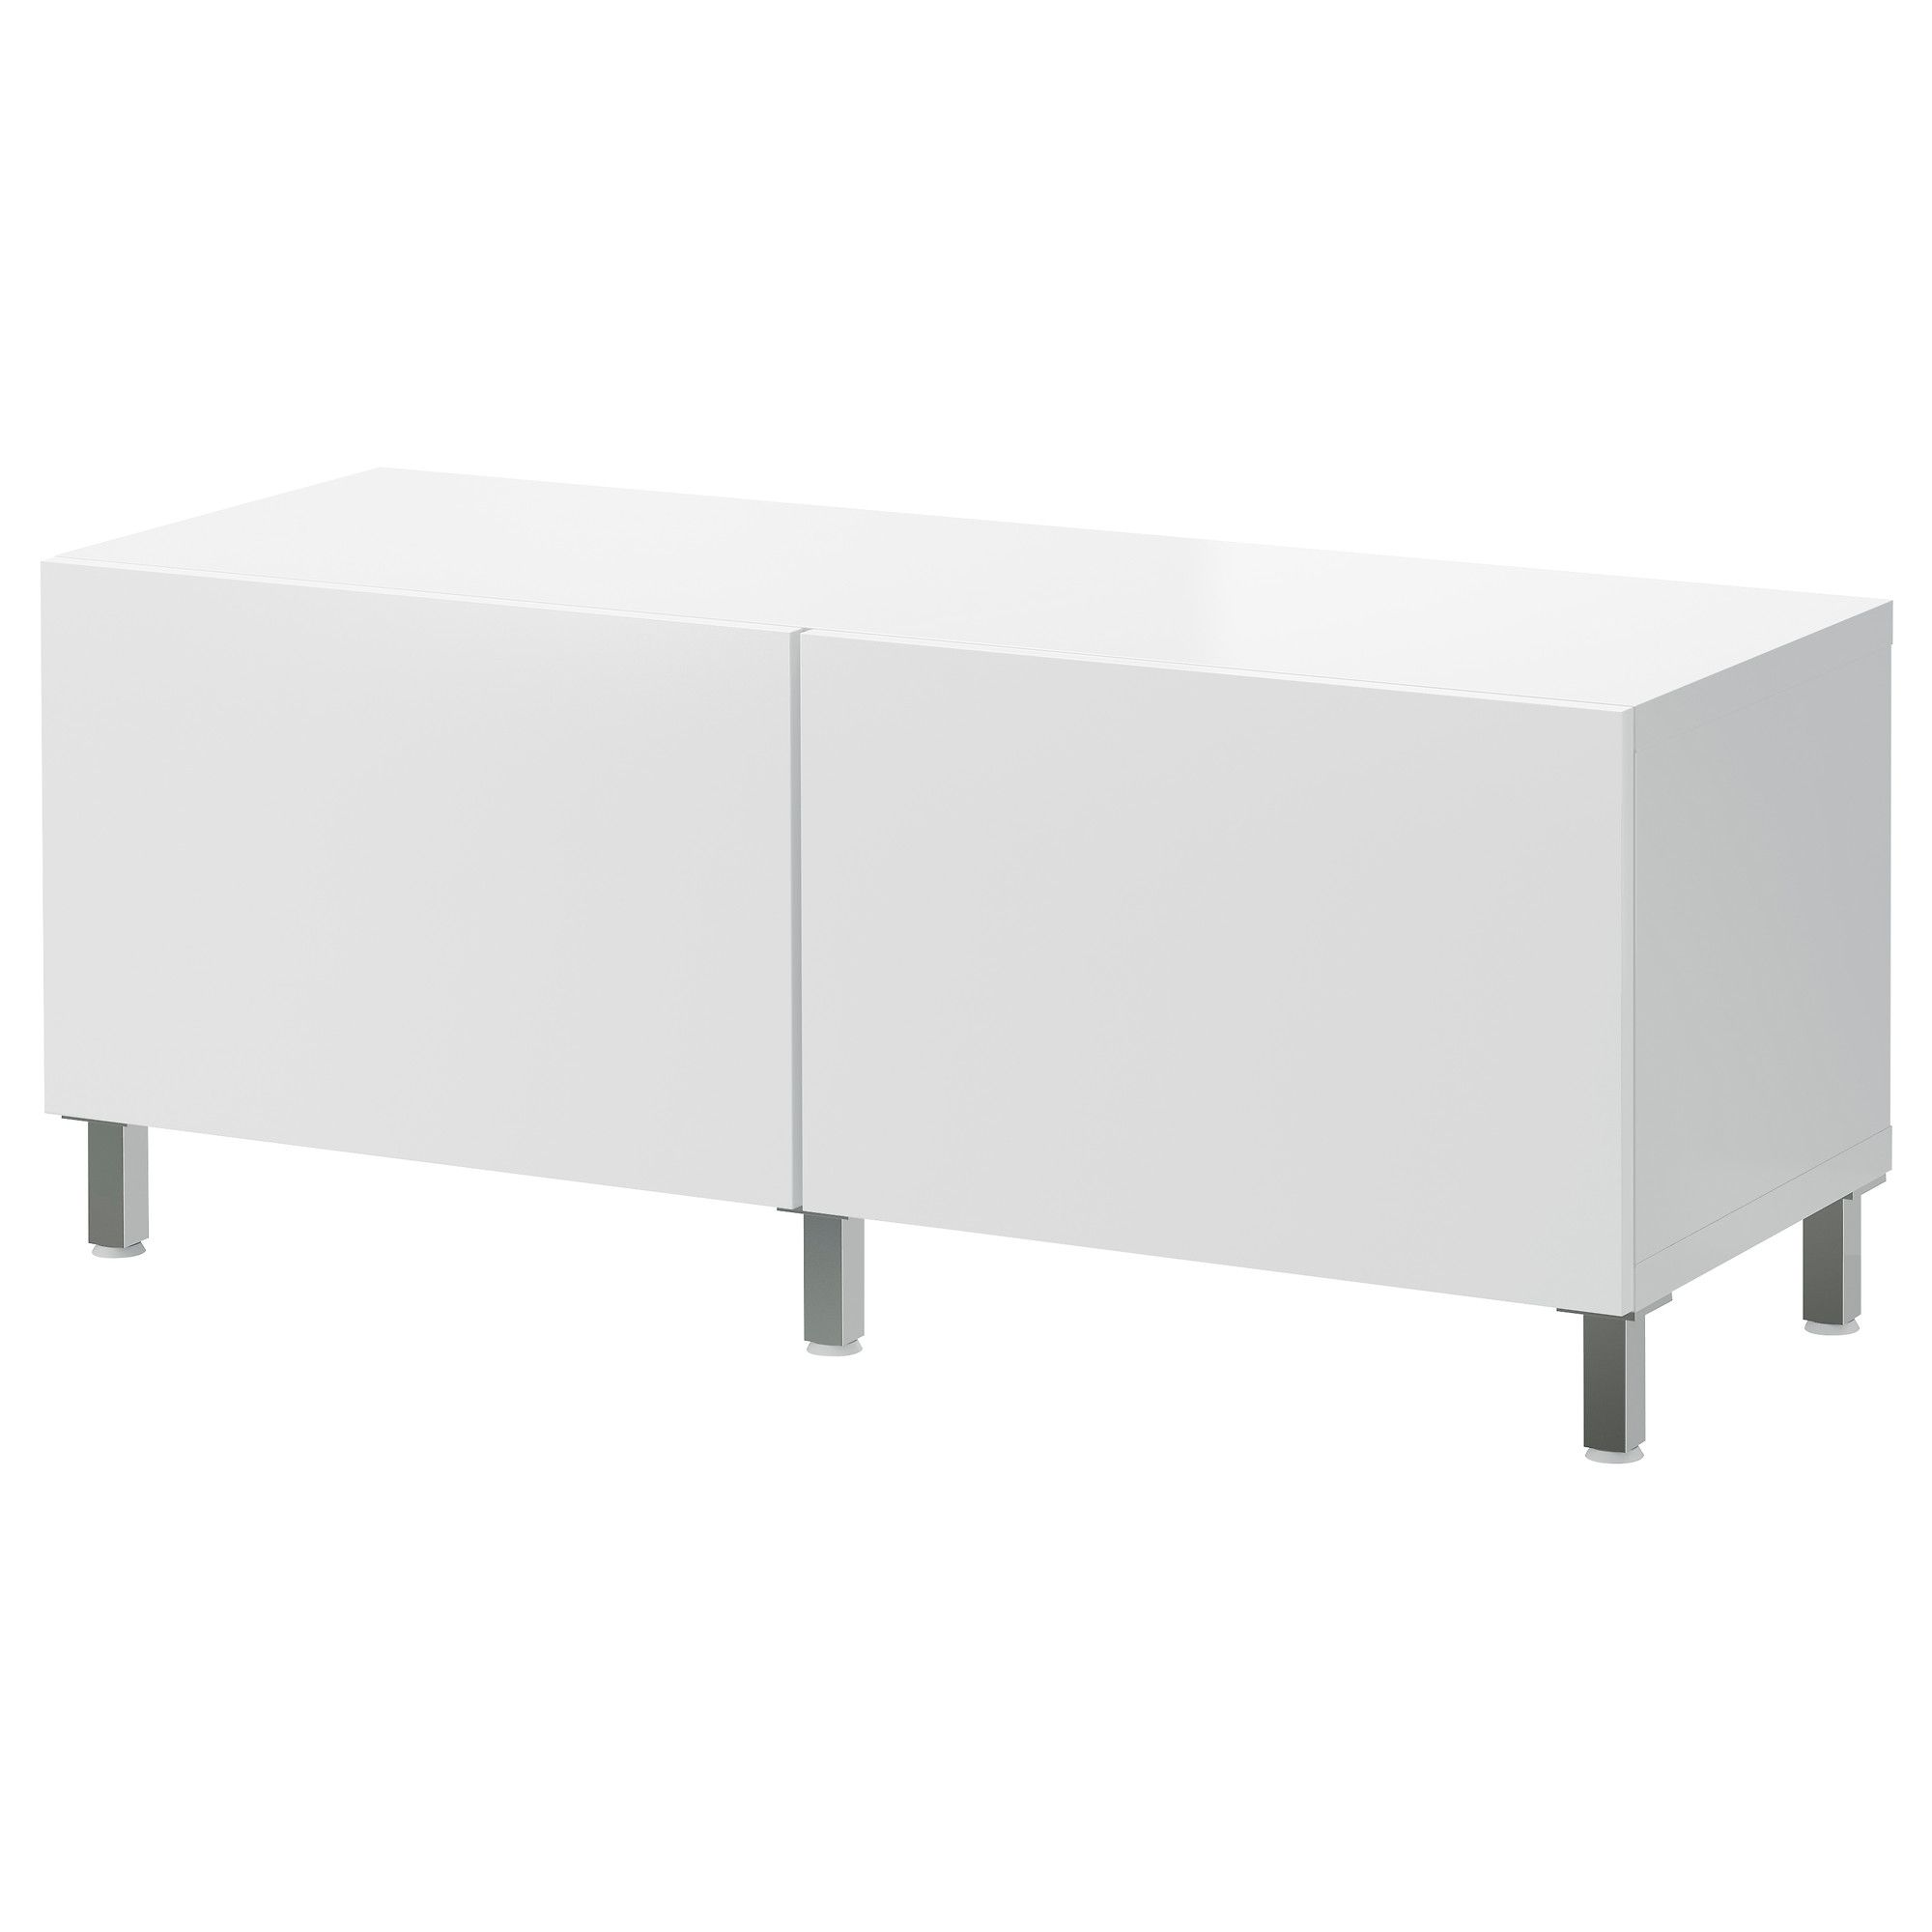 Ikea Bank Accessoires BestÅ Storage Combination With Doors White Ikea 90